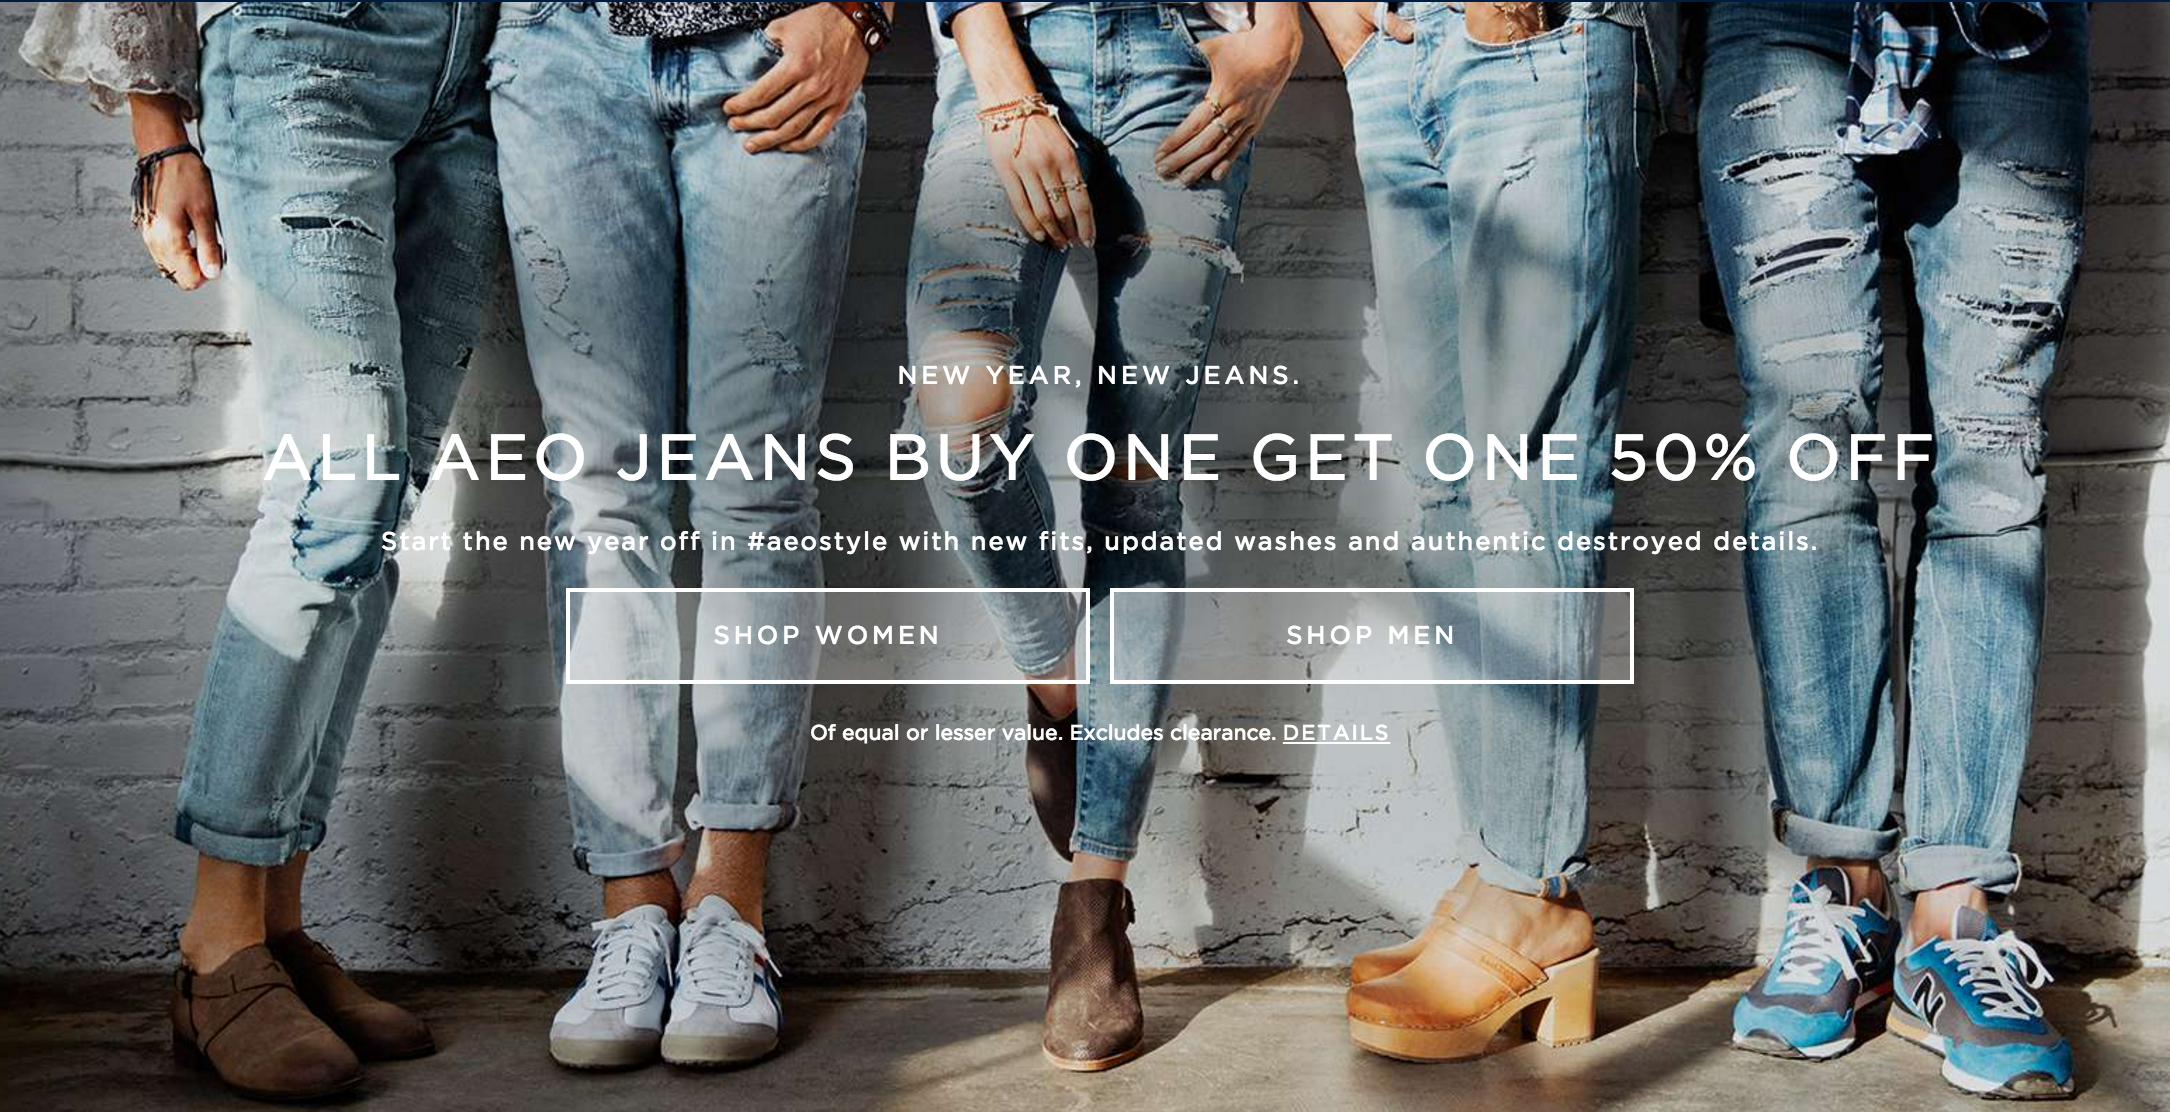 abaa82c0385b4 American Eagle Outfitters  BOGO 50% Off ALL Jeans!